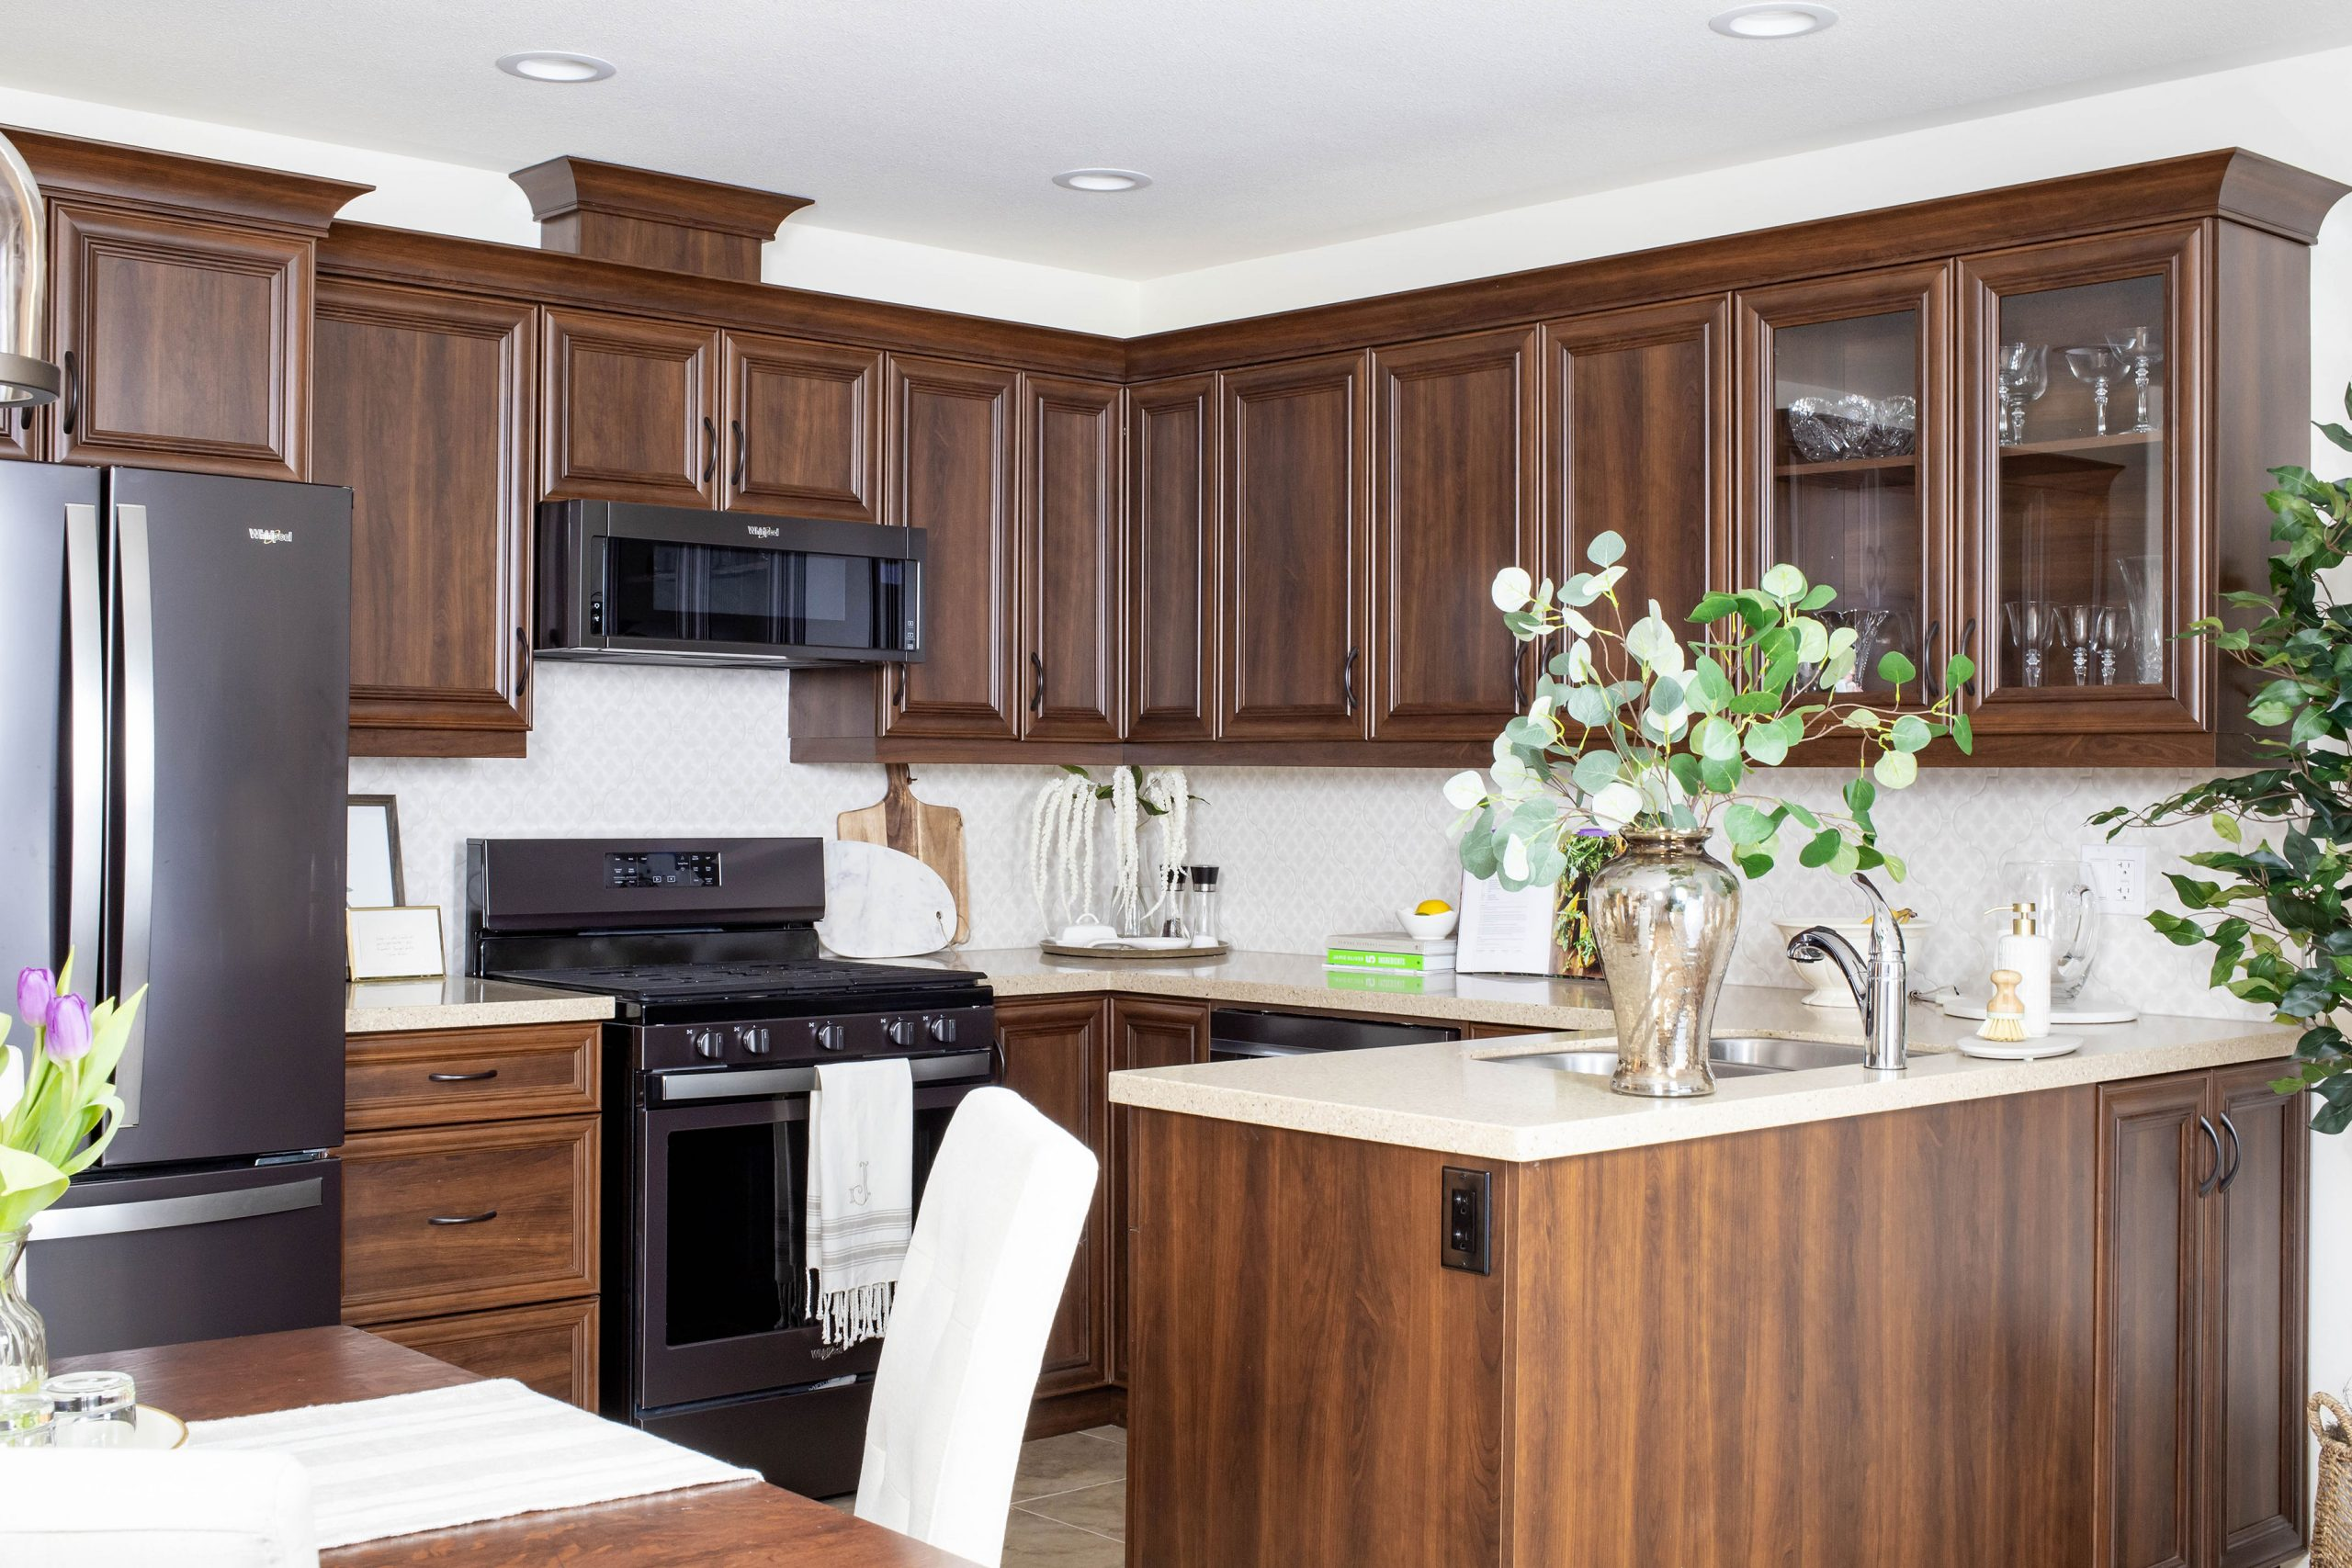 Interior designer transforms dark wood cabinetry to lighten up the kitchen